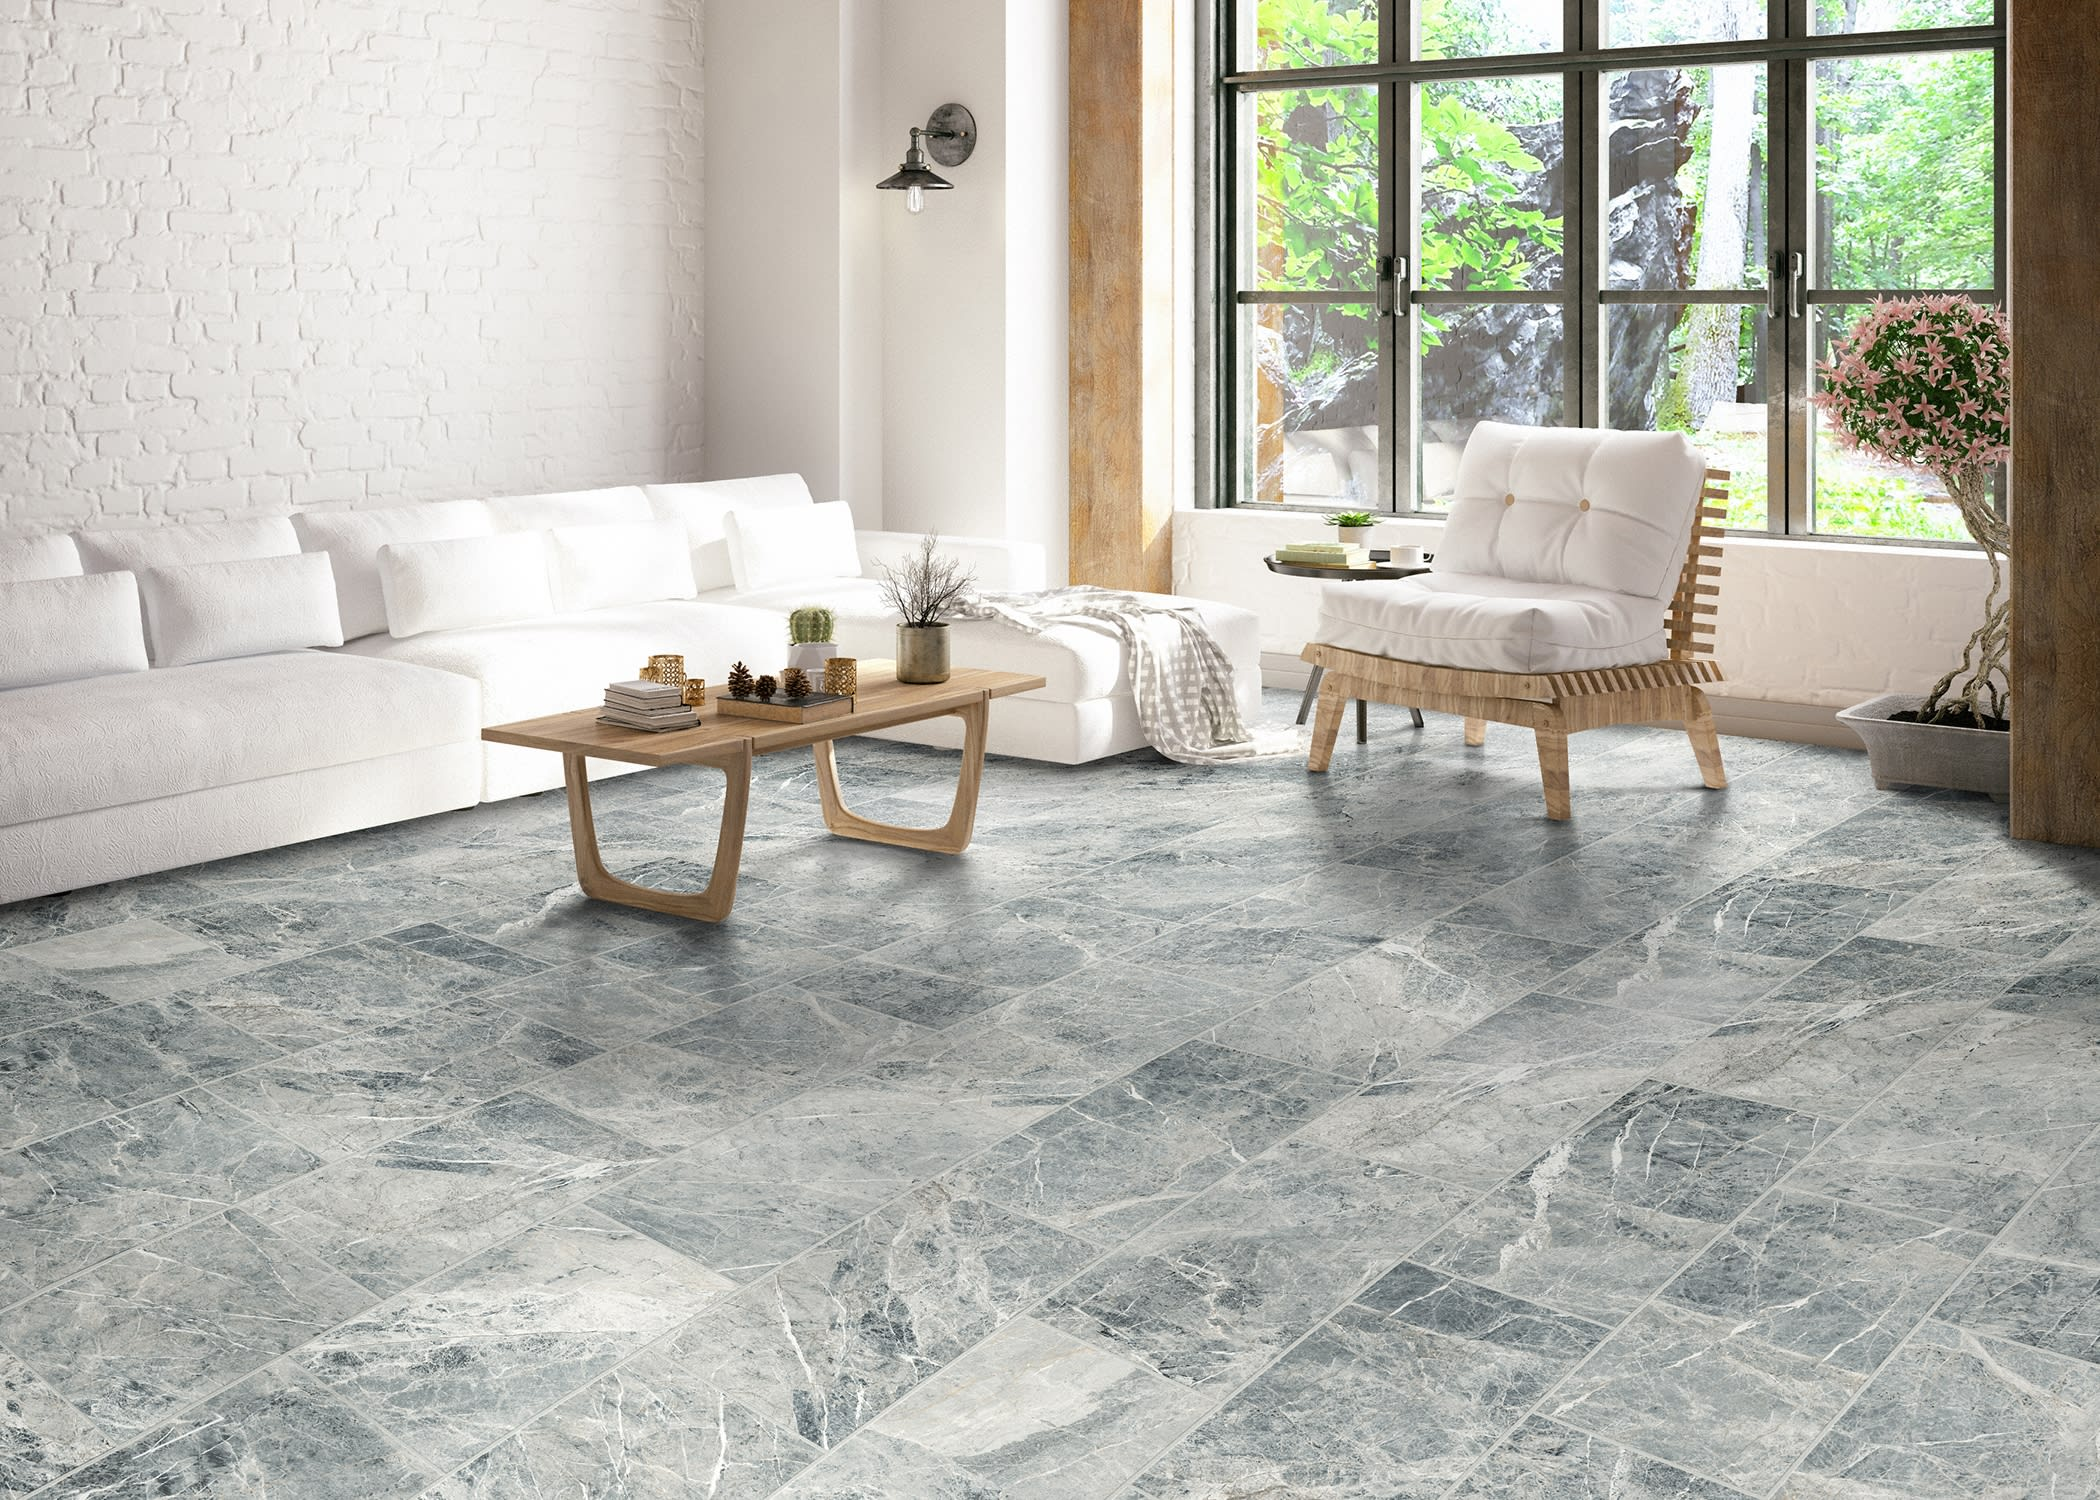 Stone-Look Tile